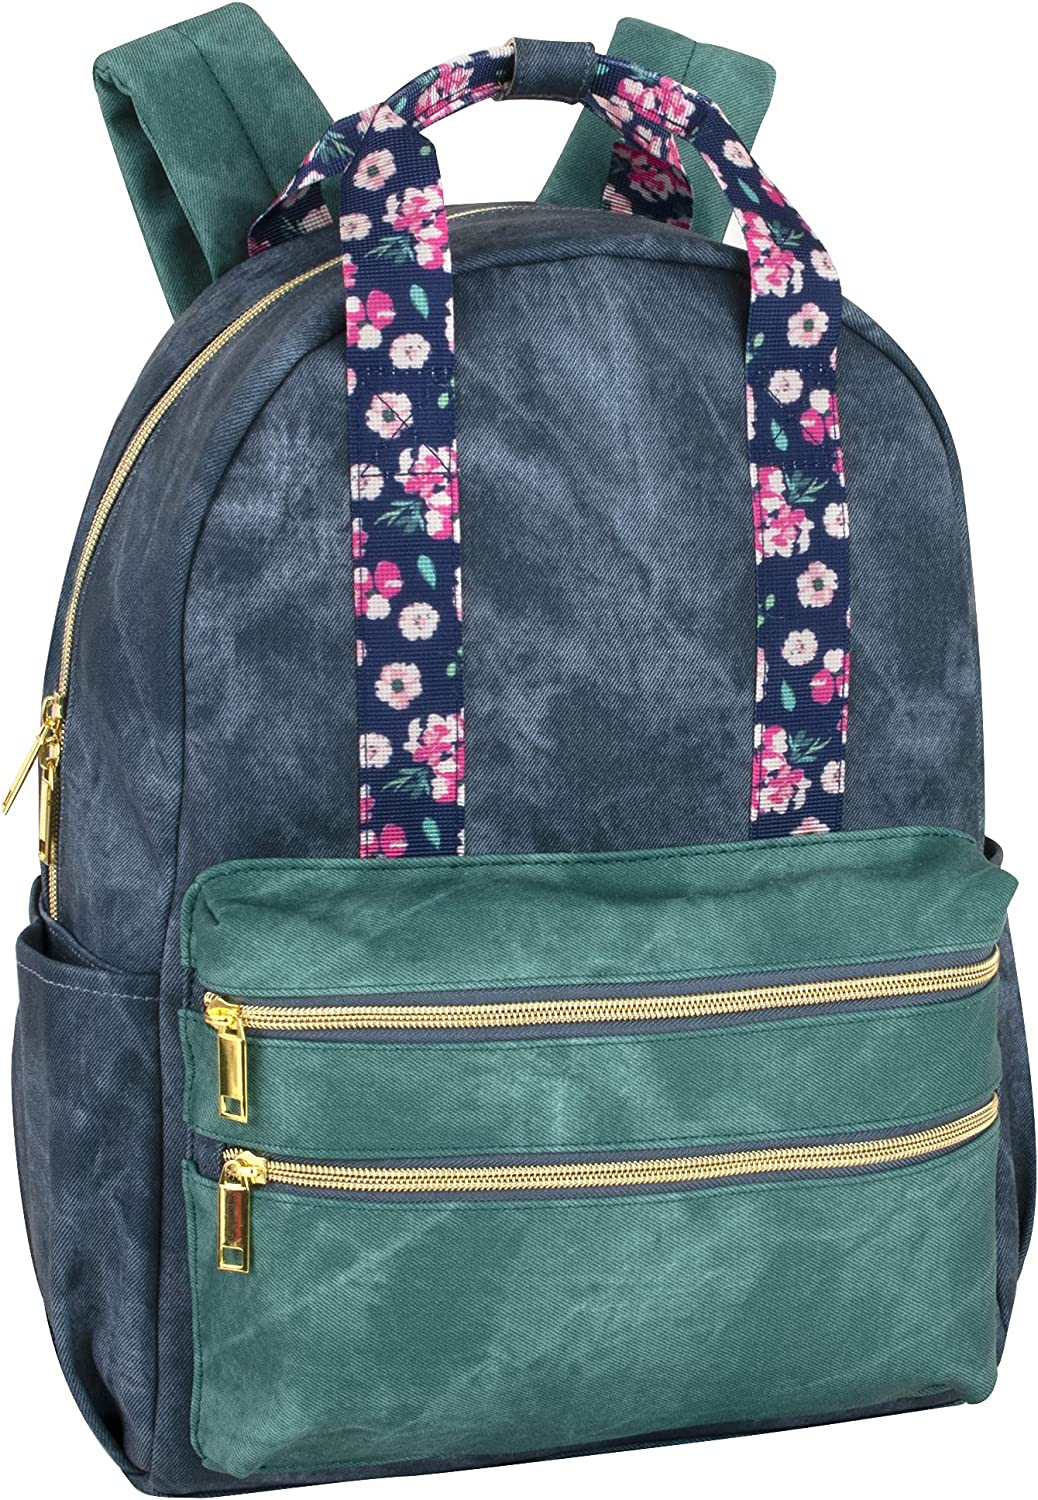 Women's and Girls Floral Vegan Travel for Backpack Schoo Leather OFFicial Max 84% OFF store